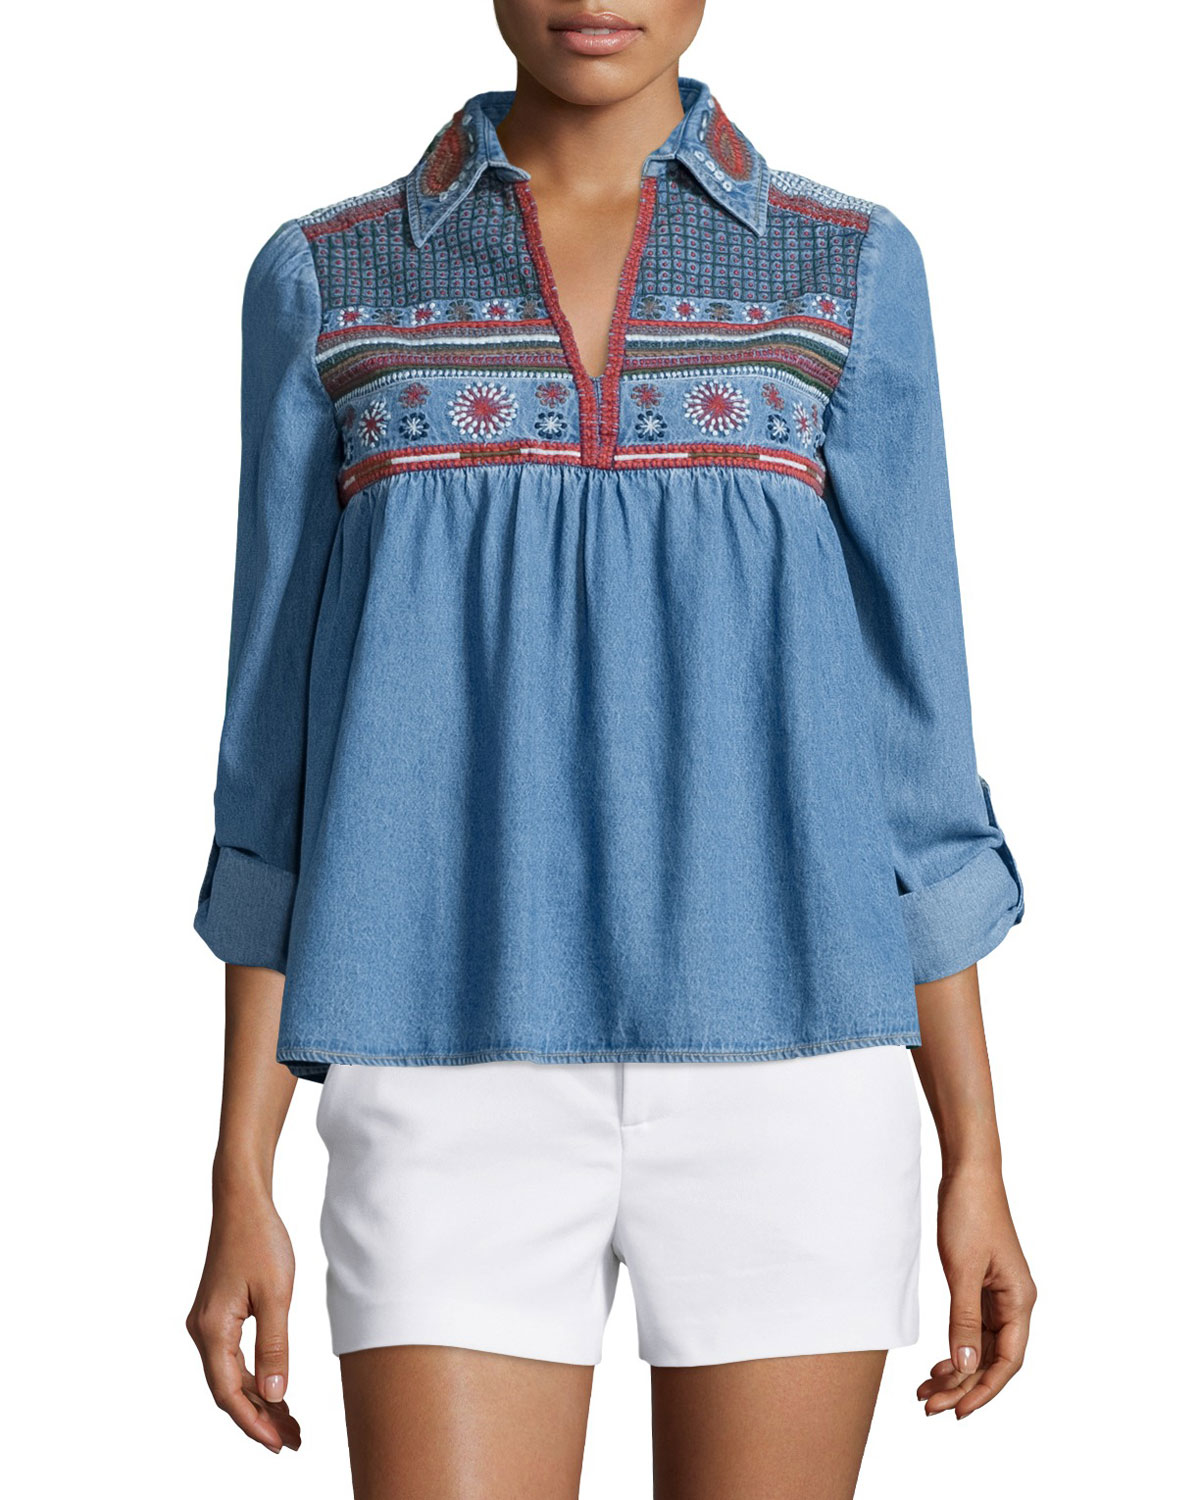 Alice olivia karly embroidered chambray top in blue lyst for Chambray top